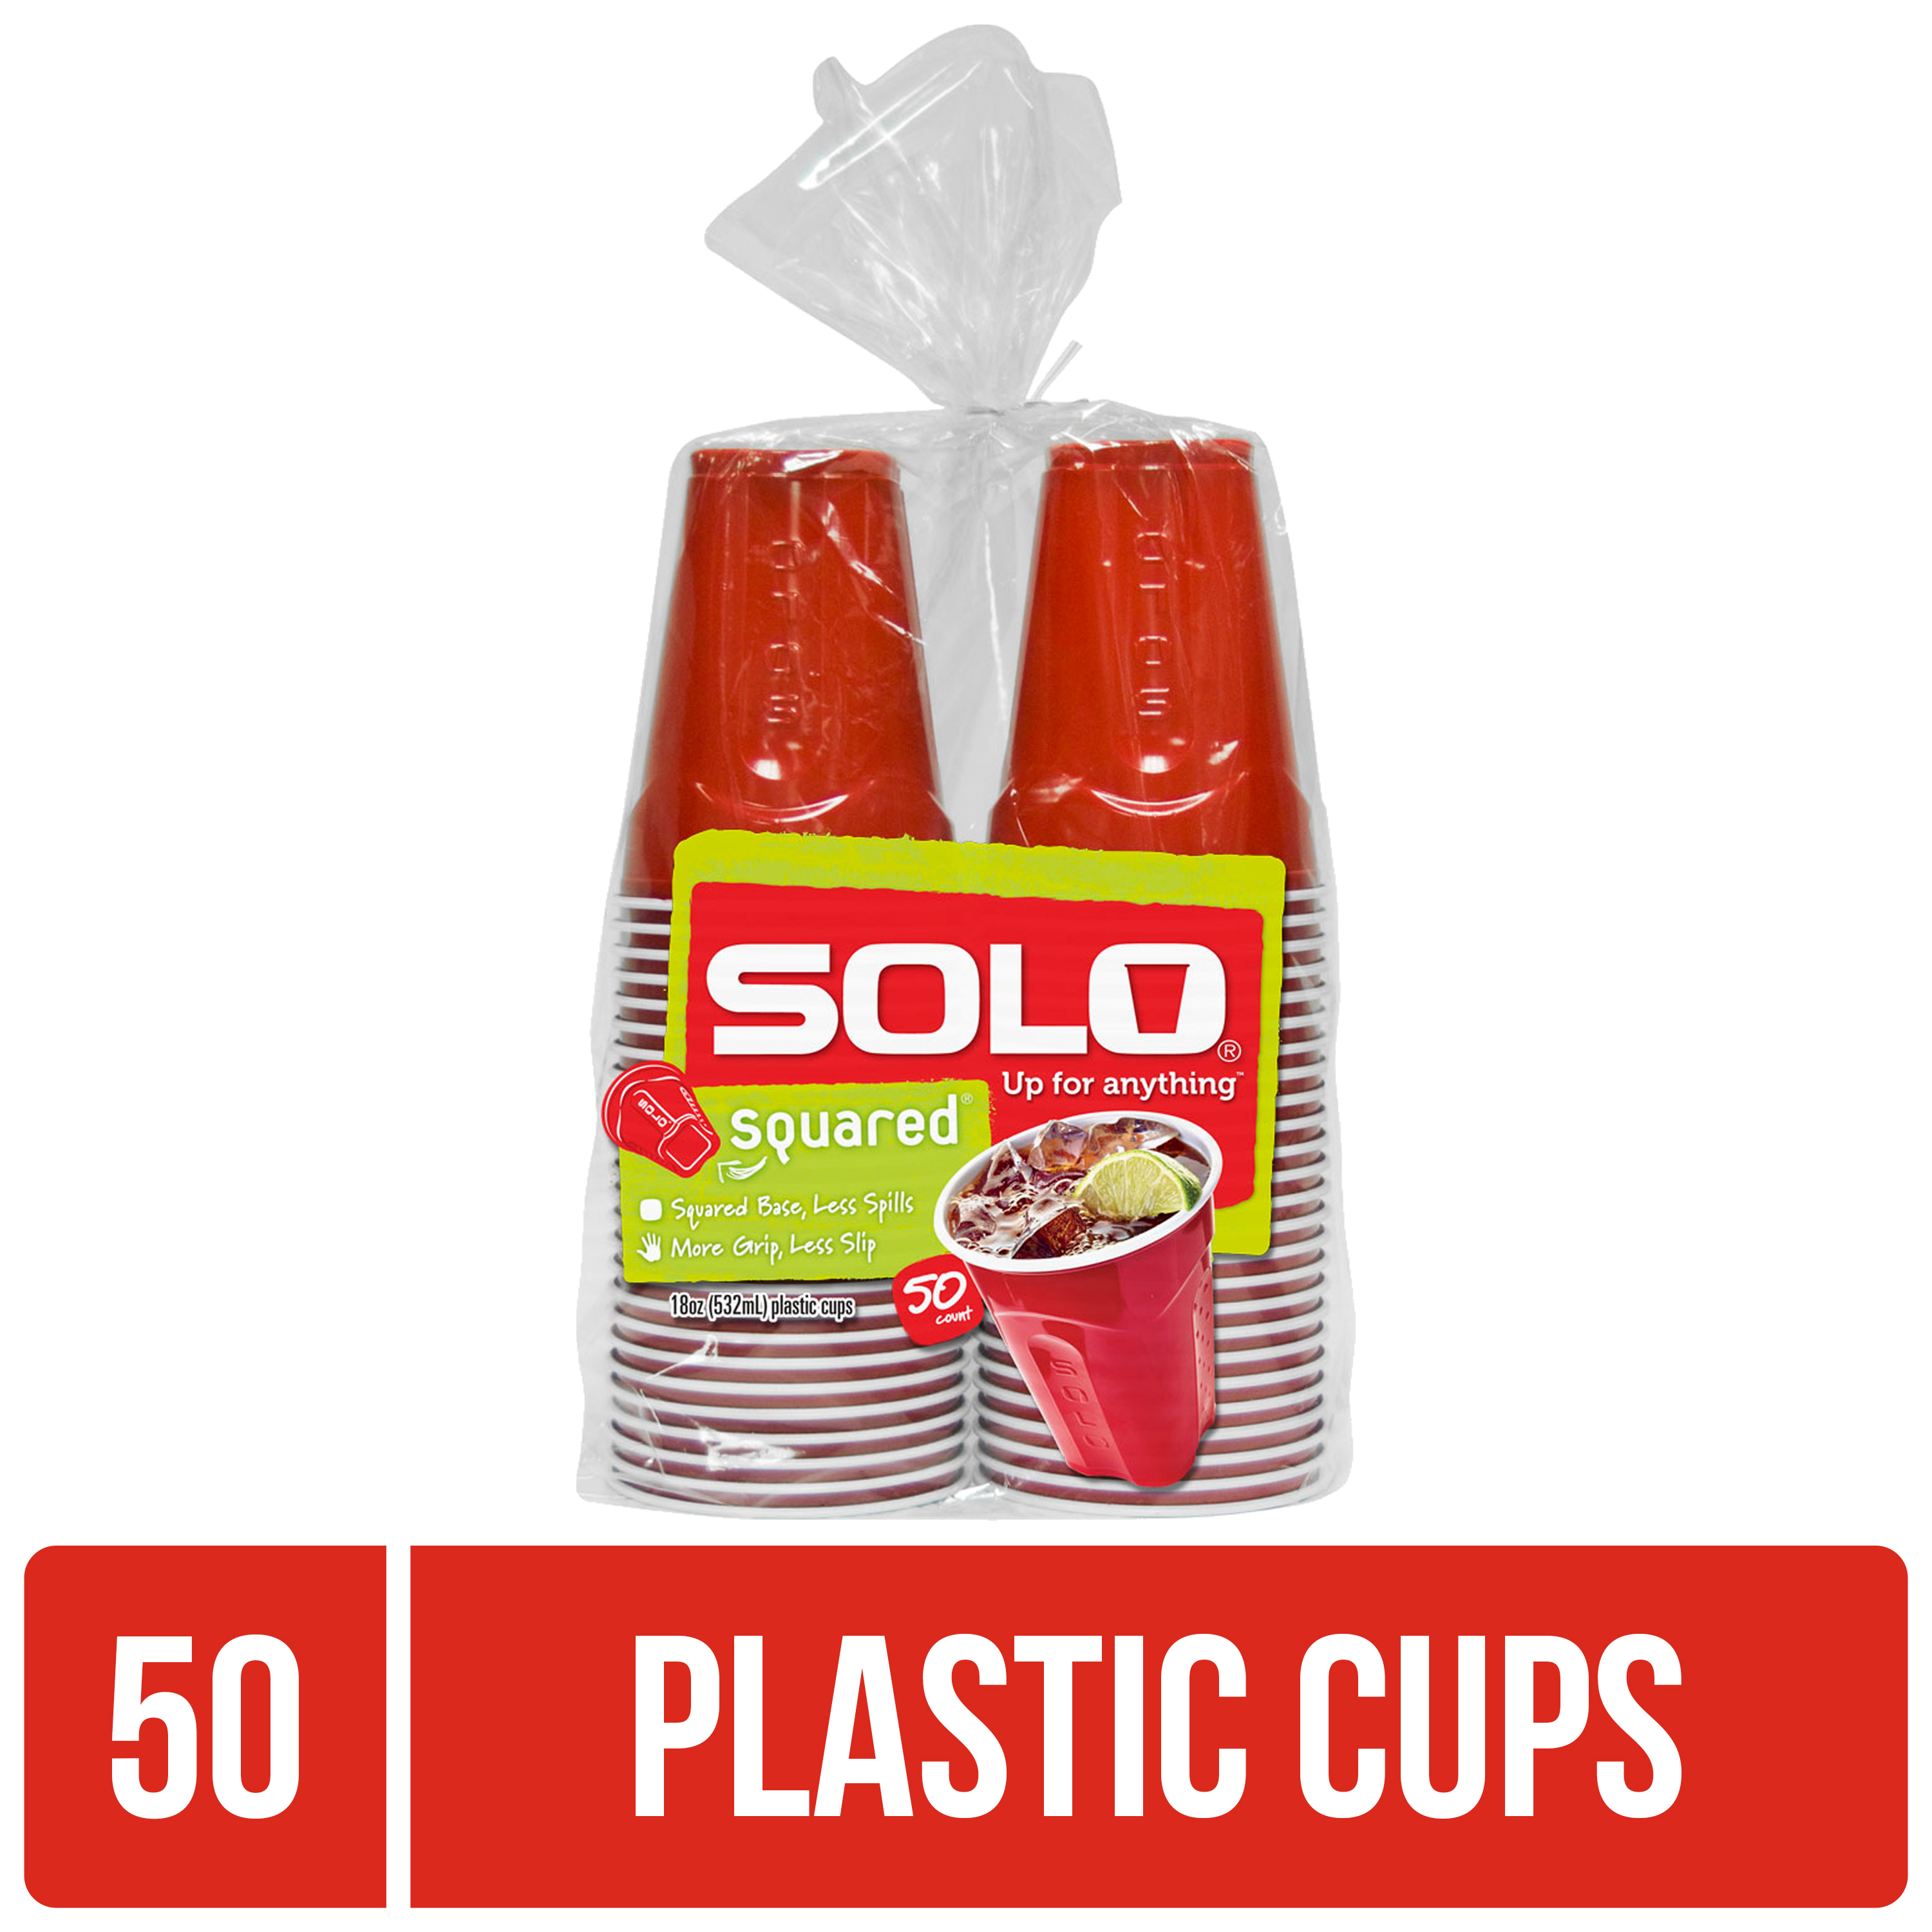 Plastic Shot Glasses 2 oz 45ct Mini Red Cups Reusable or Disposable Jello Shot Shooters Sample Tasting Cups